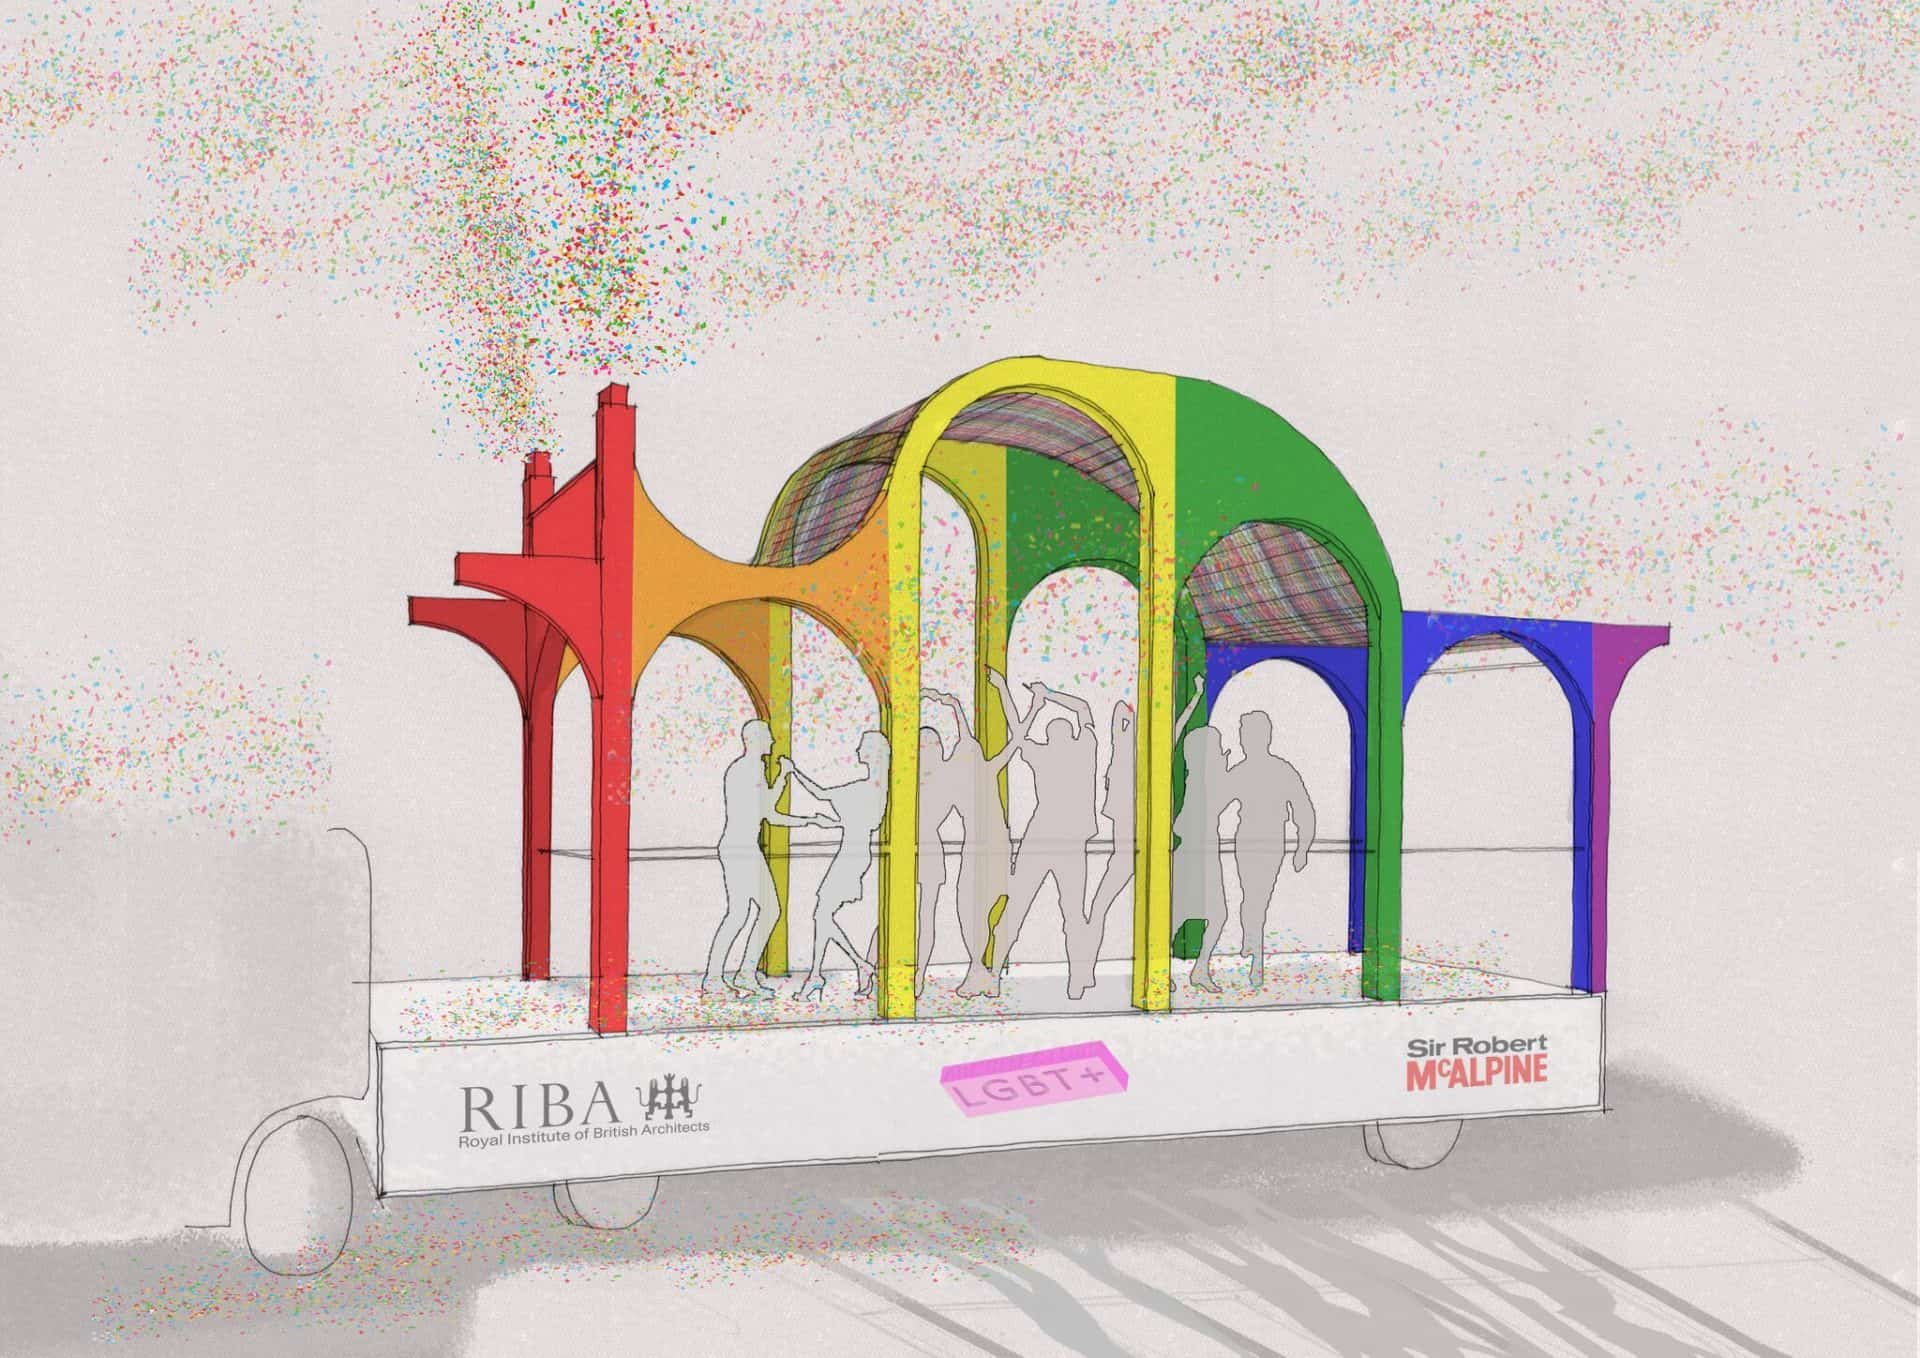 LFA and Architecture LGBT+ announce shortlist for Pride in London float